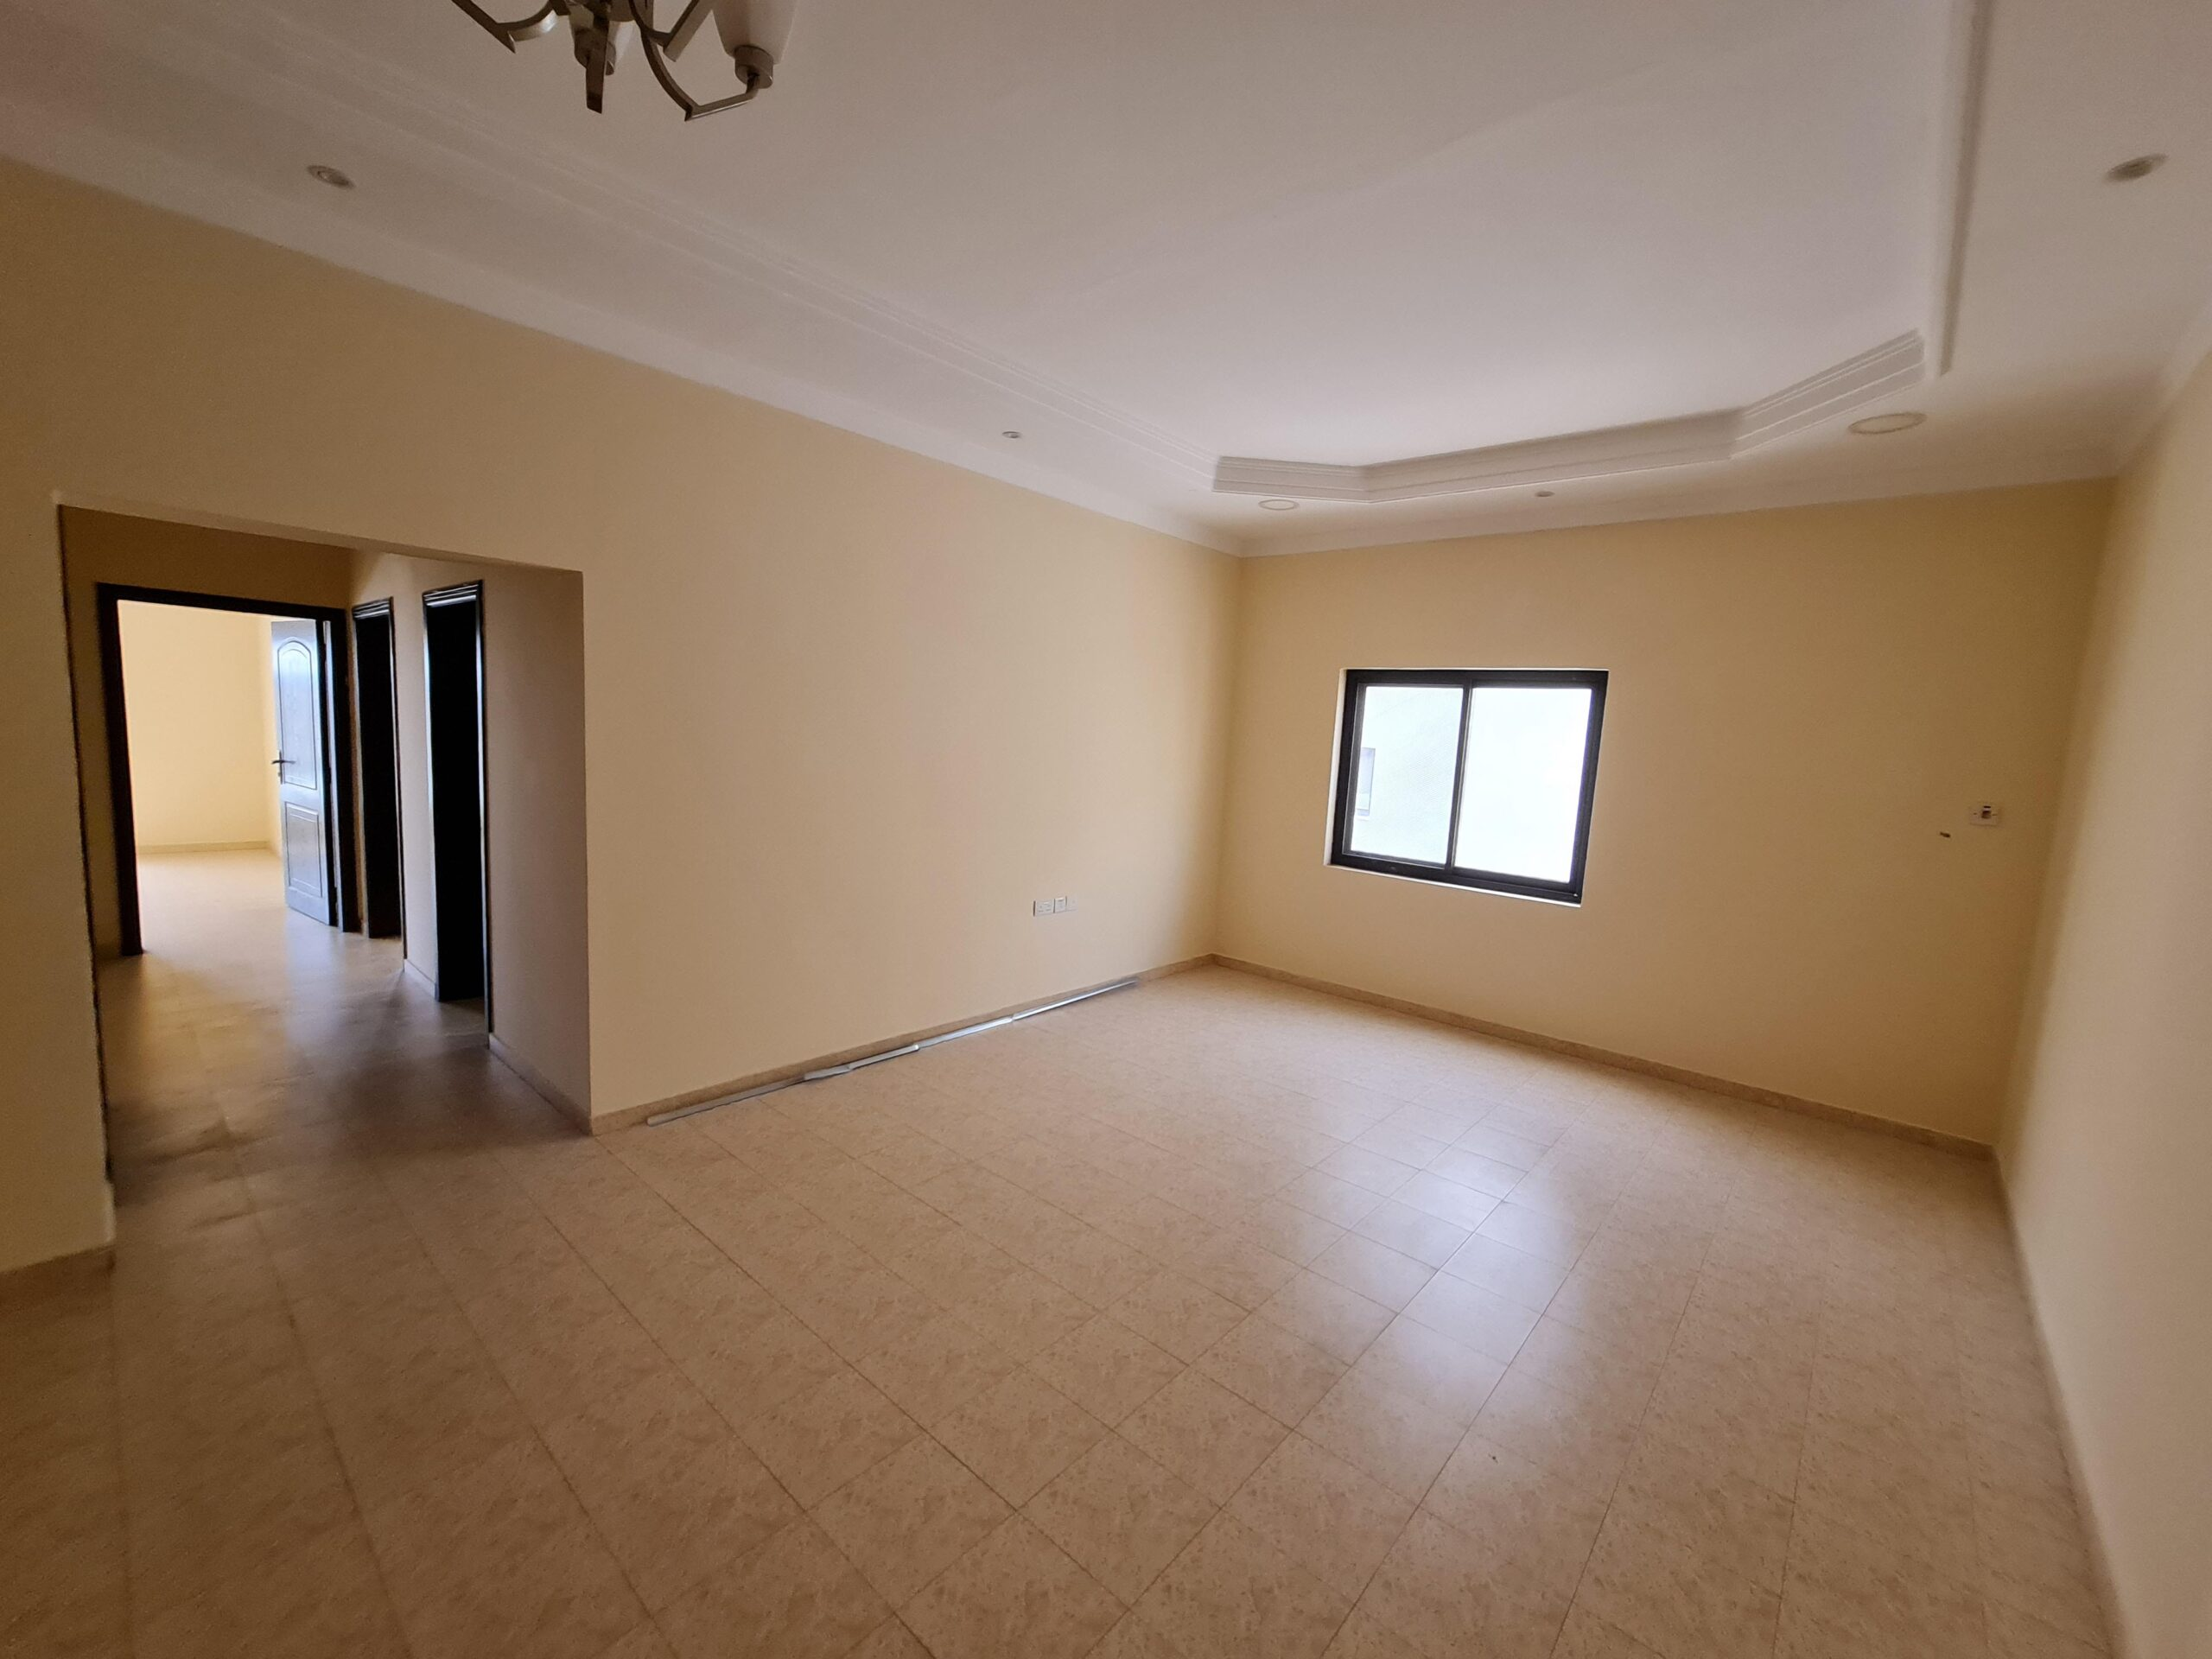 Commercial office for rent in Jurdab Town